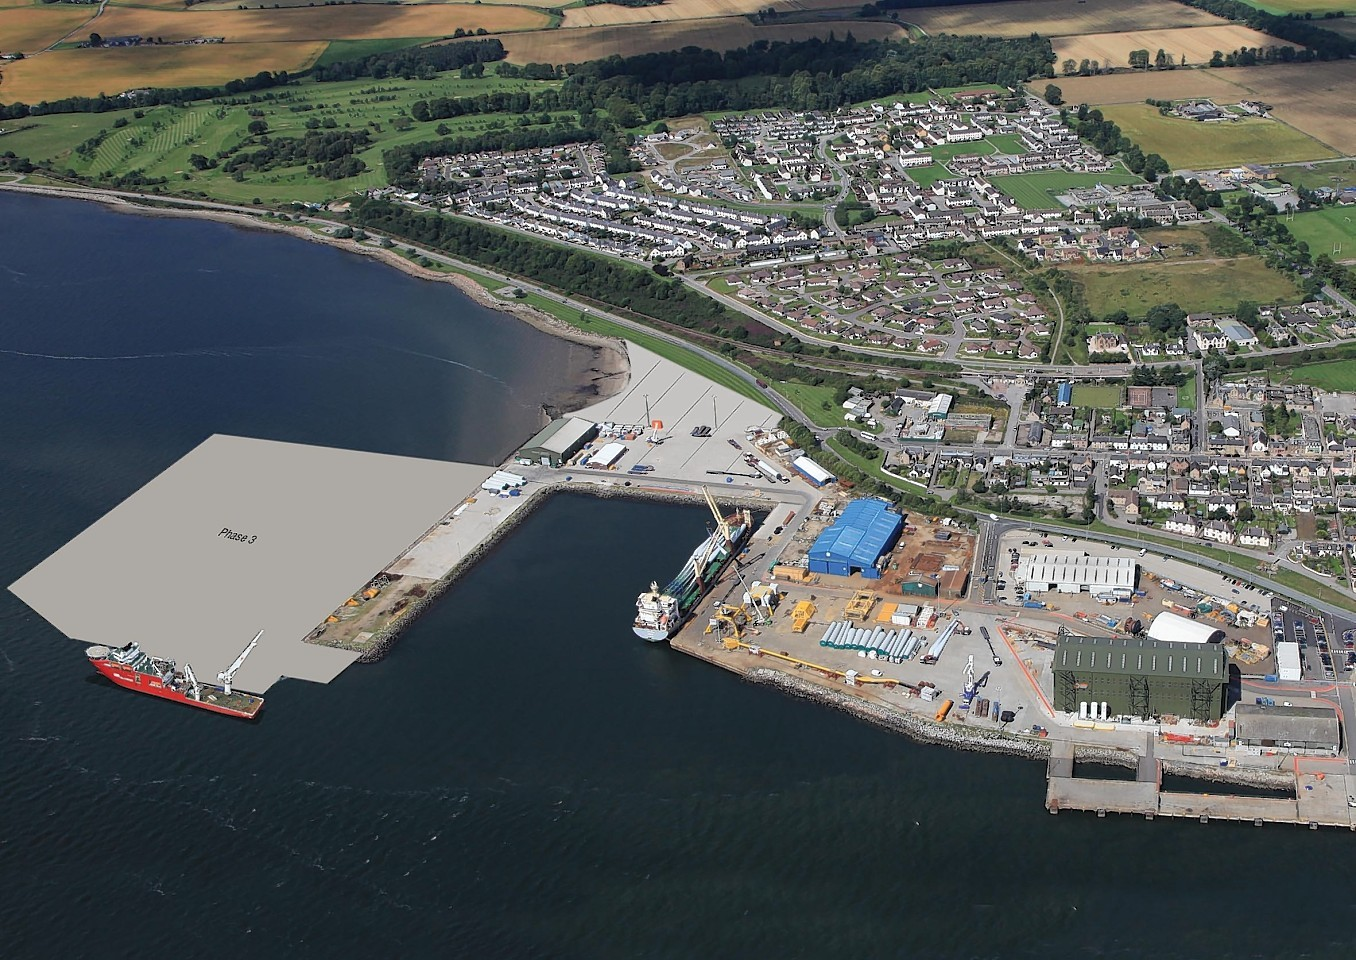 Plans for development of the port on the Cromarty Firth